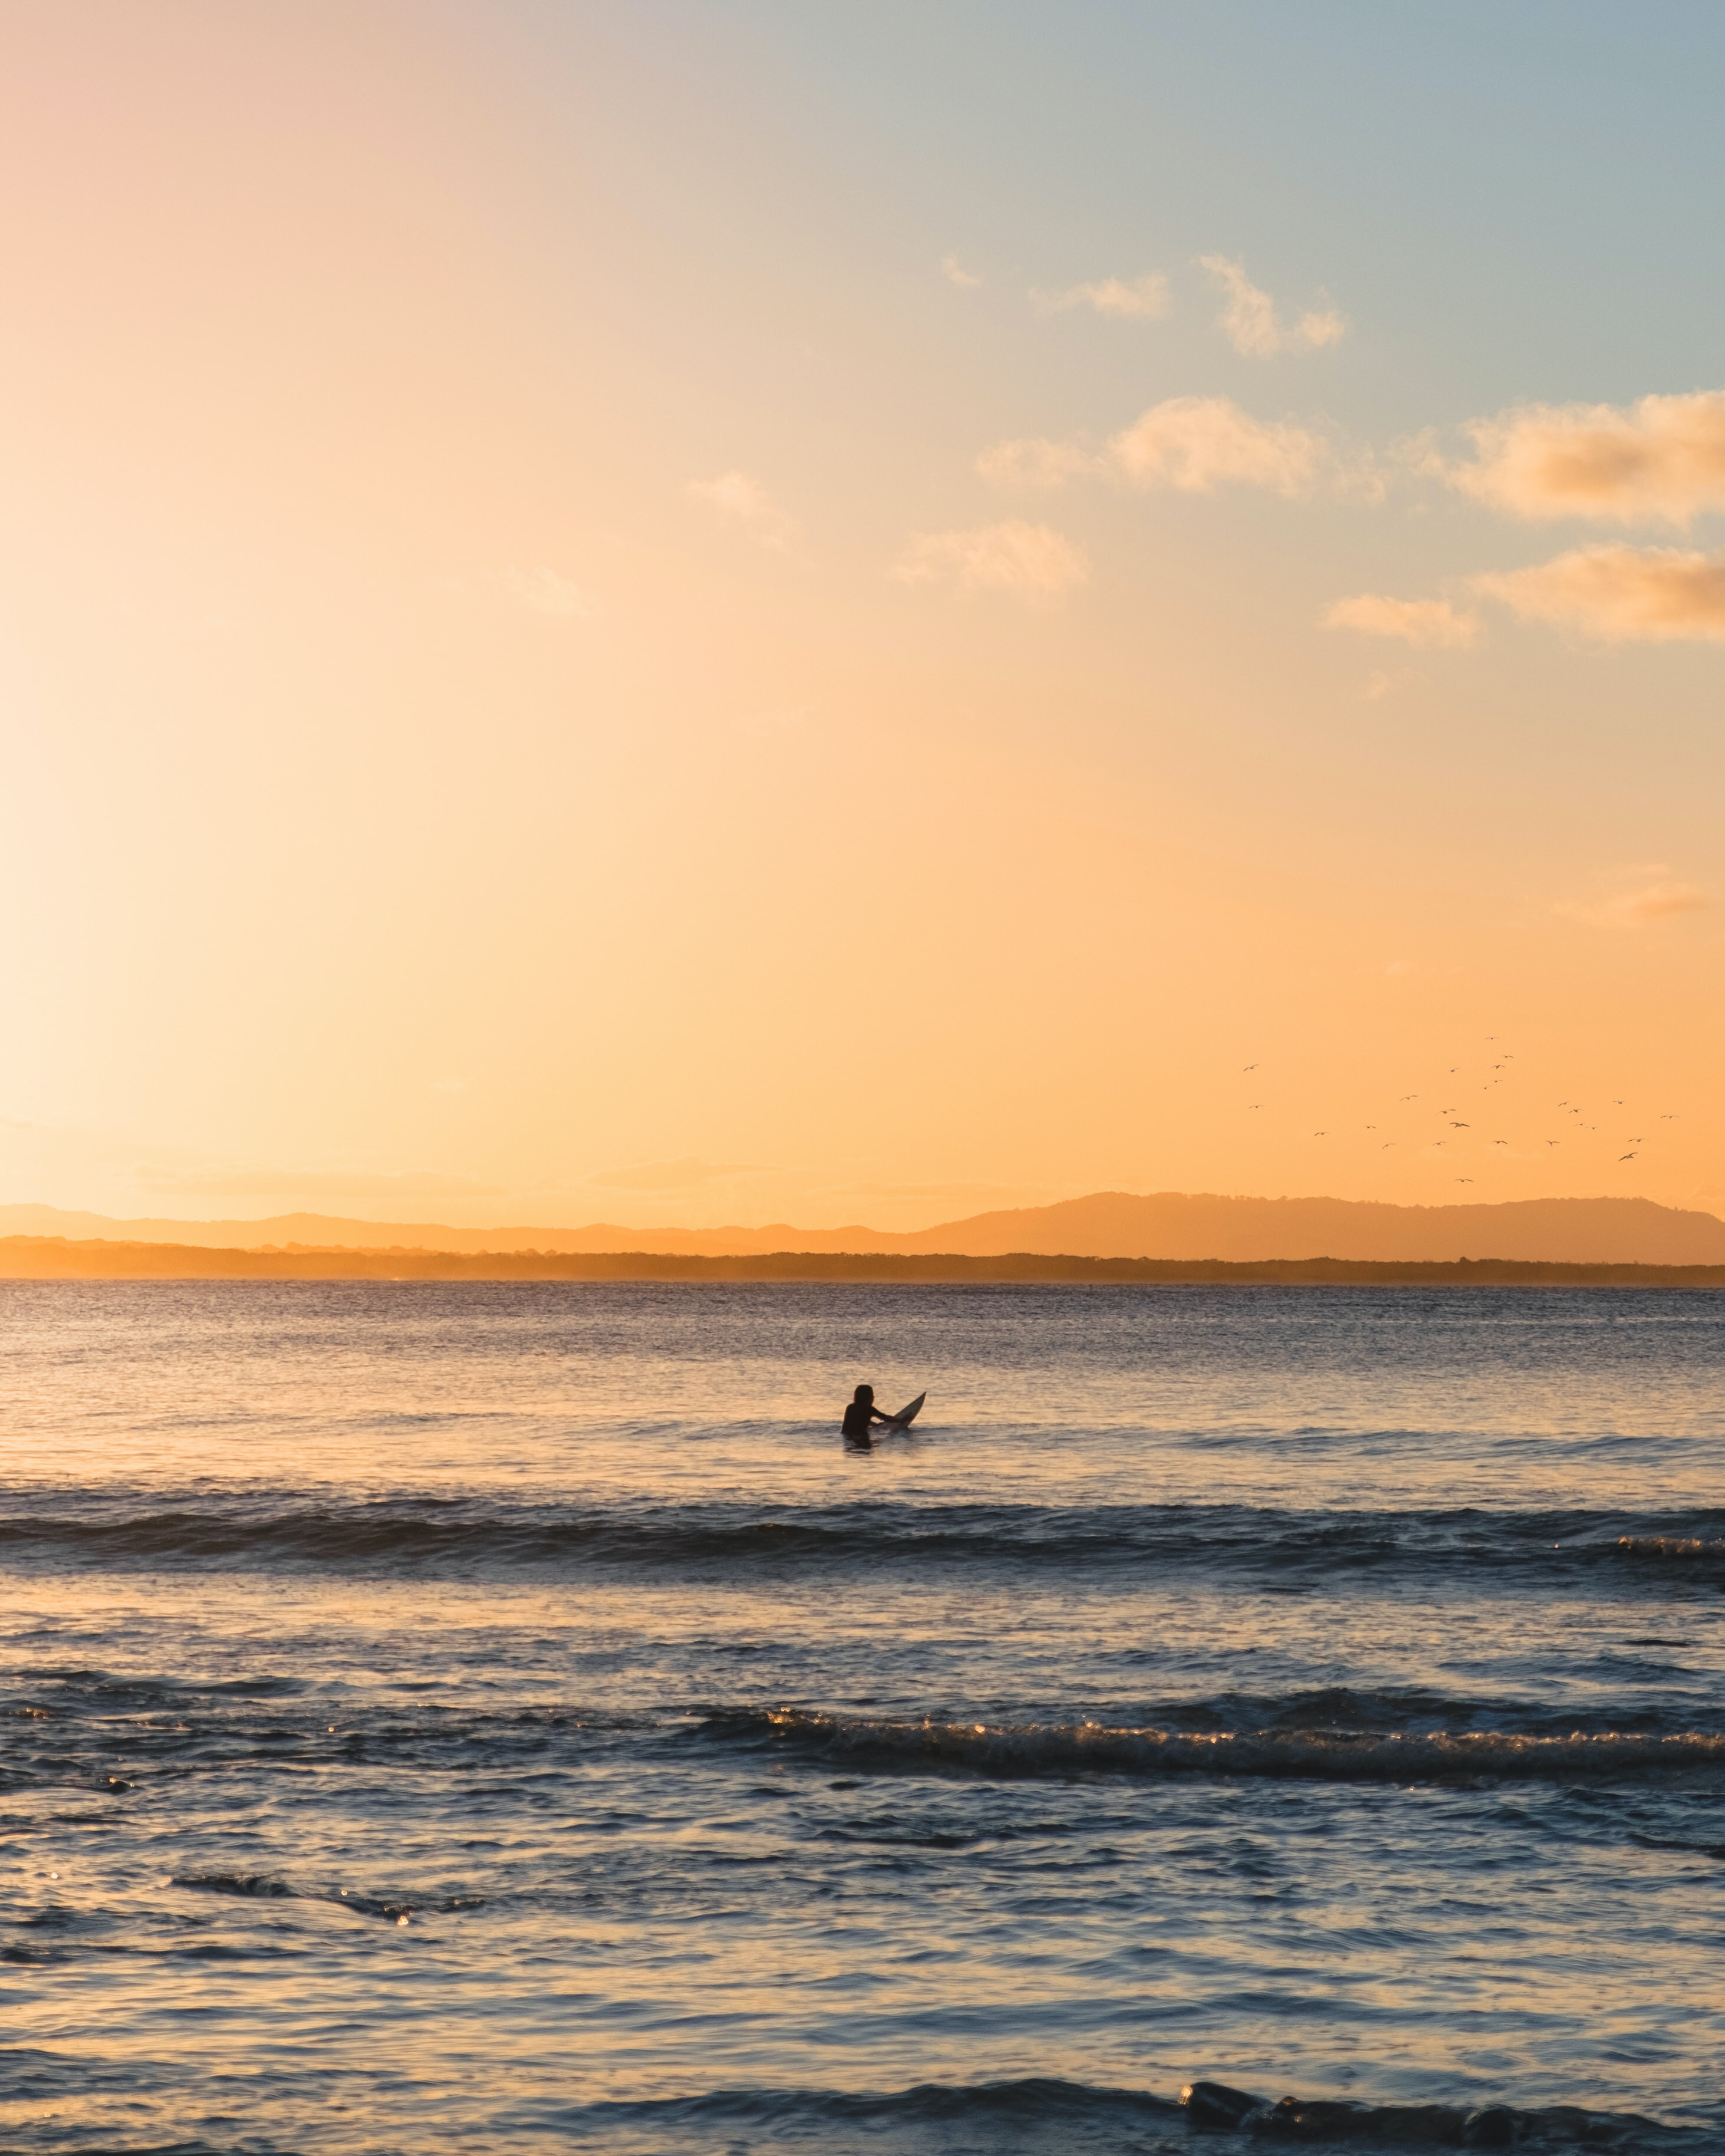 photo of person holding surfboard at the sea